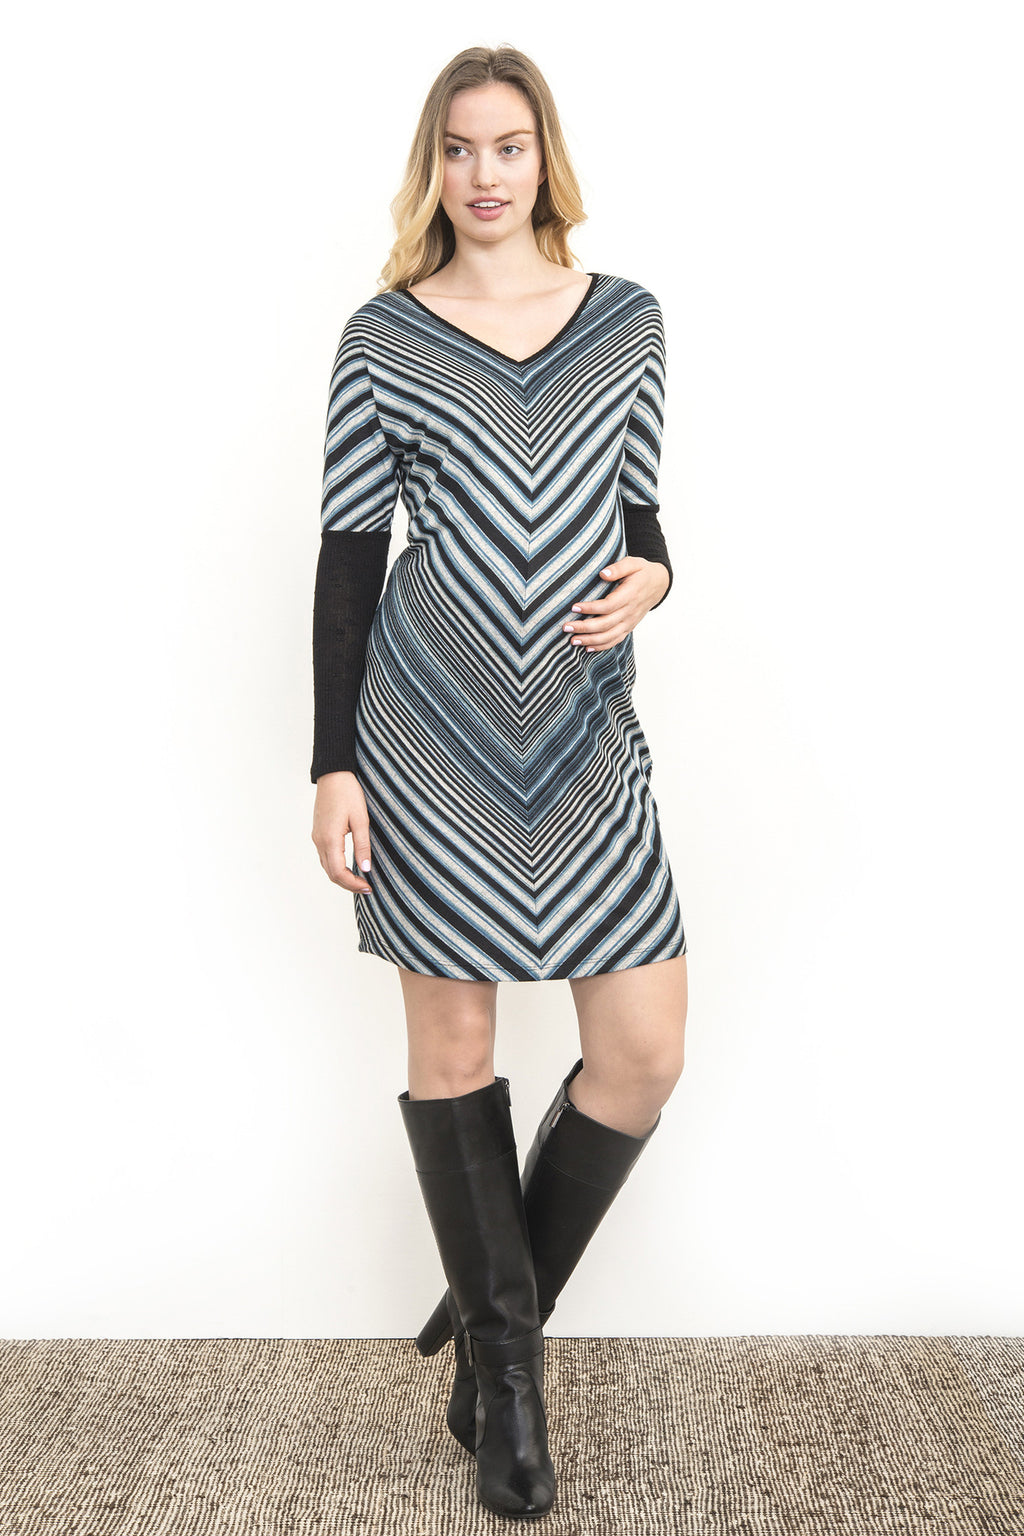 Bias Stripes Dress